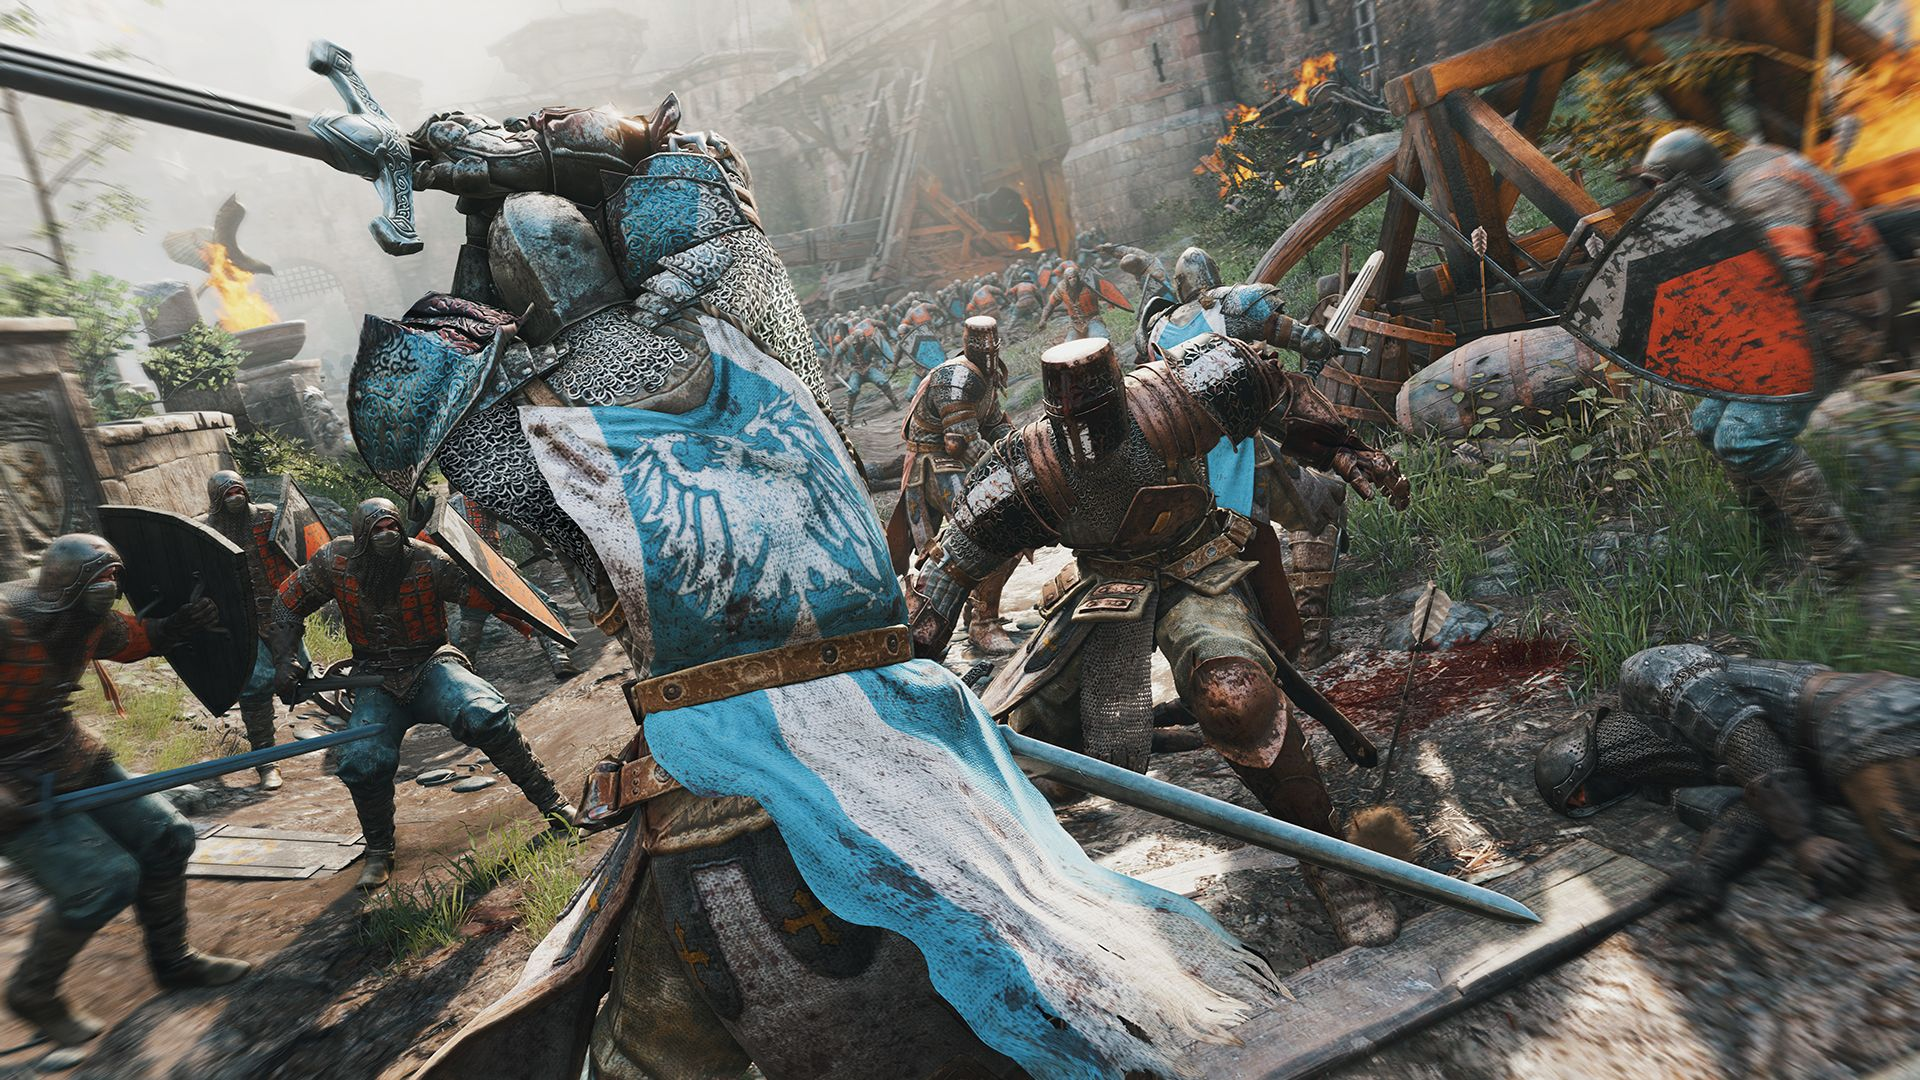 How To Get For Honor For Free Xbox One